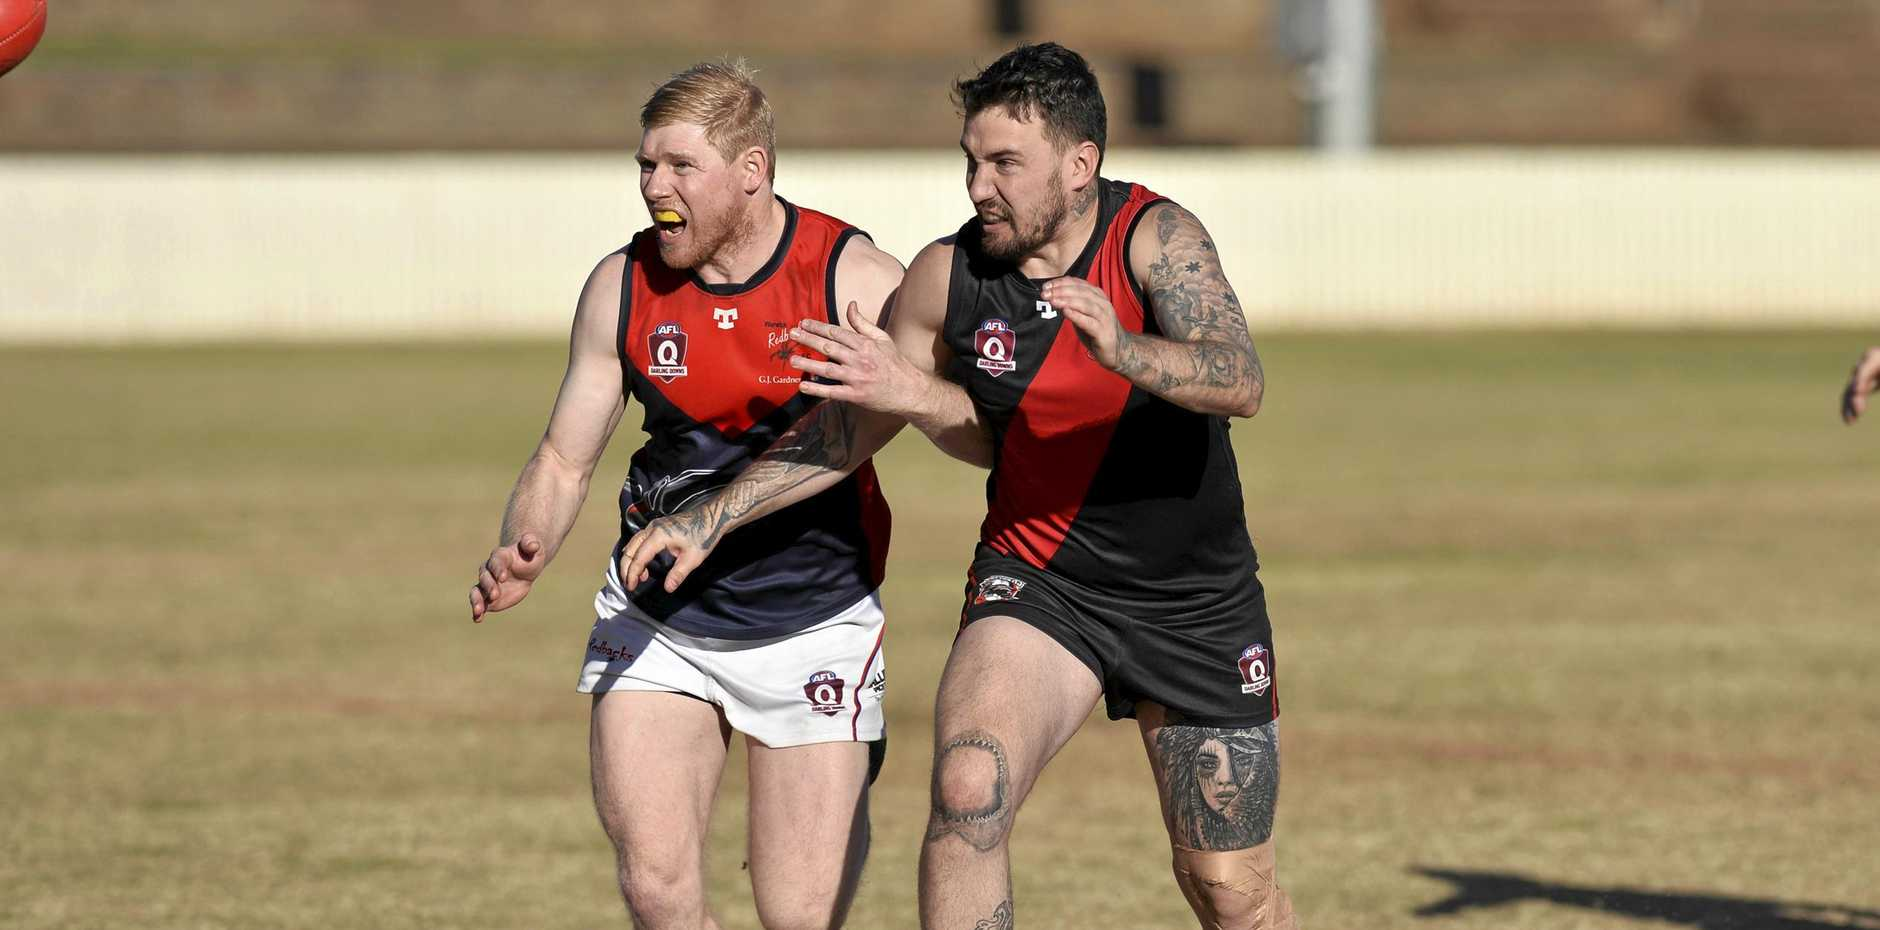 FIERCE CONTEST: Warwick Redbacks player Andrew Politch (left) and Kurt Heier of South Toowoomba Bombers jostle for position during the Redbacks 30-point victory at the weekend.